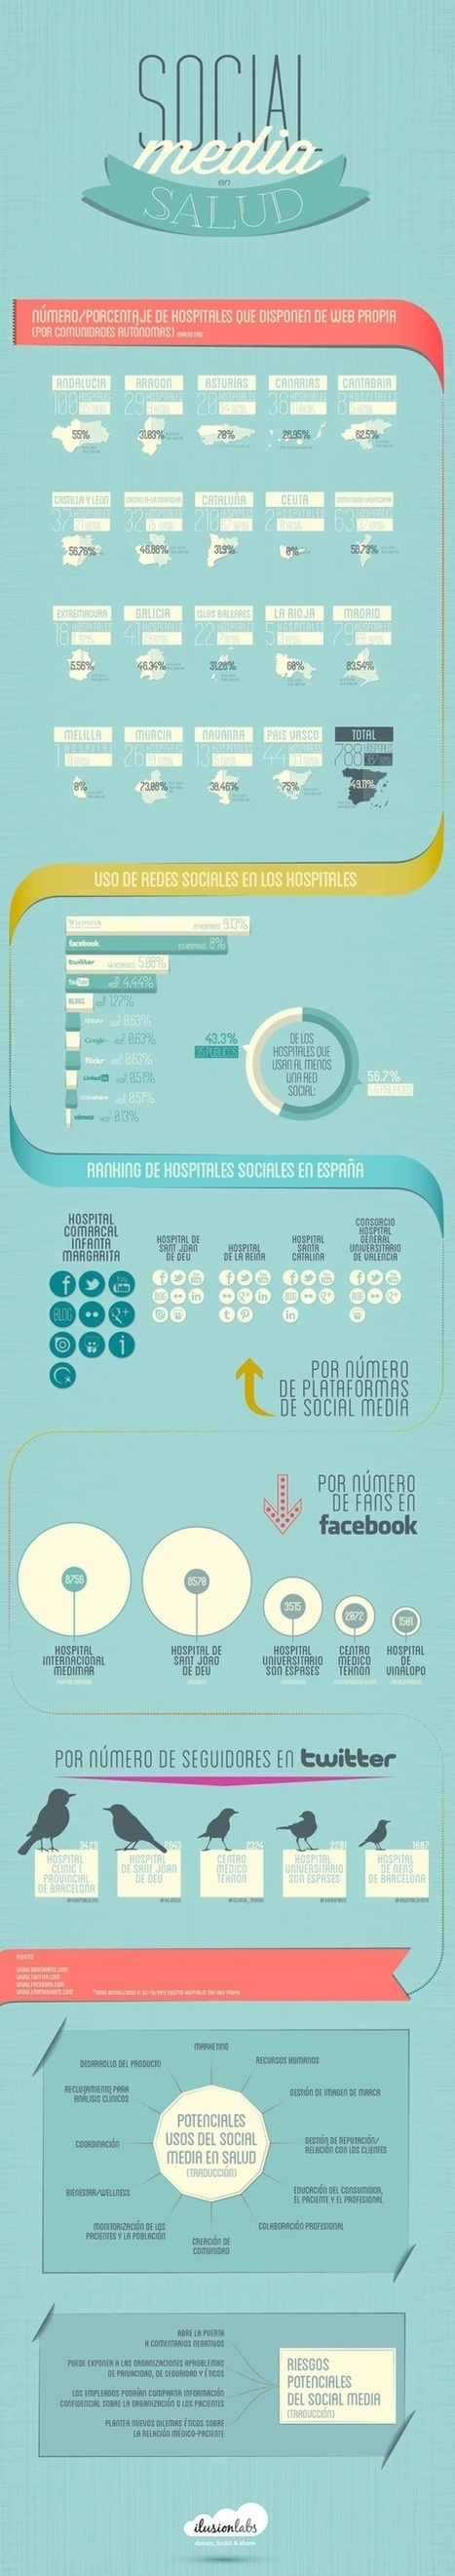 Infografía: Salud y Social Media en Hospitales. España. Vía Hospital Digital | Salud Social Media | Scoop.it